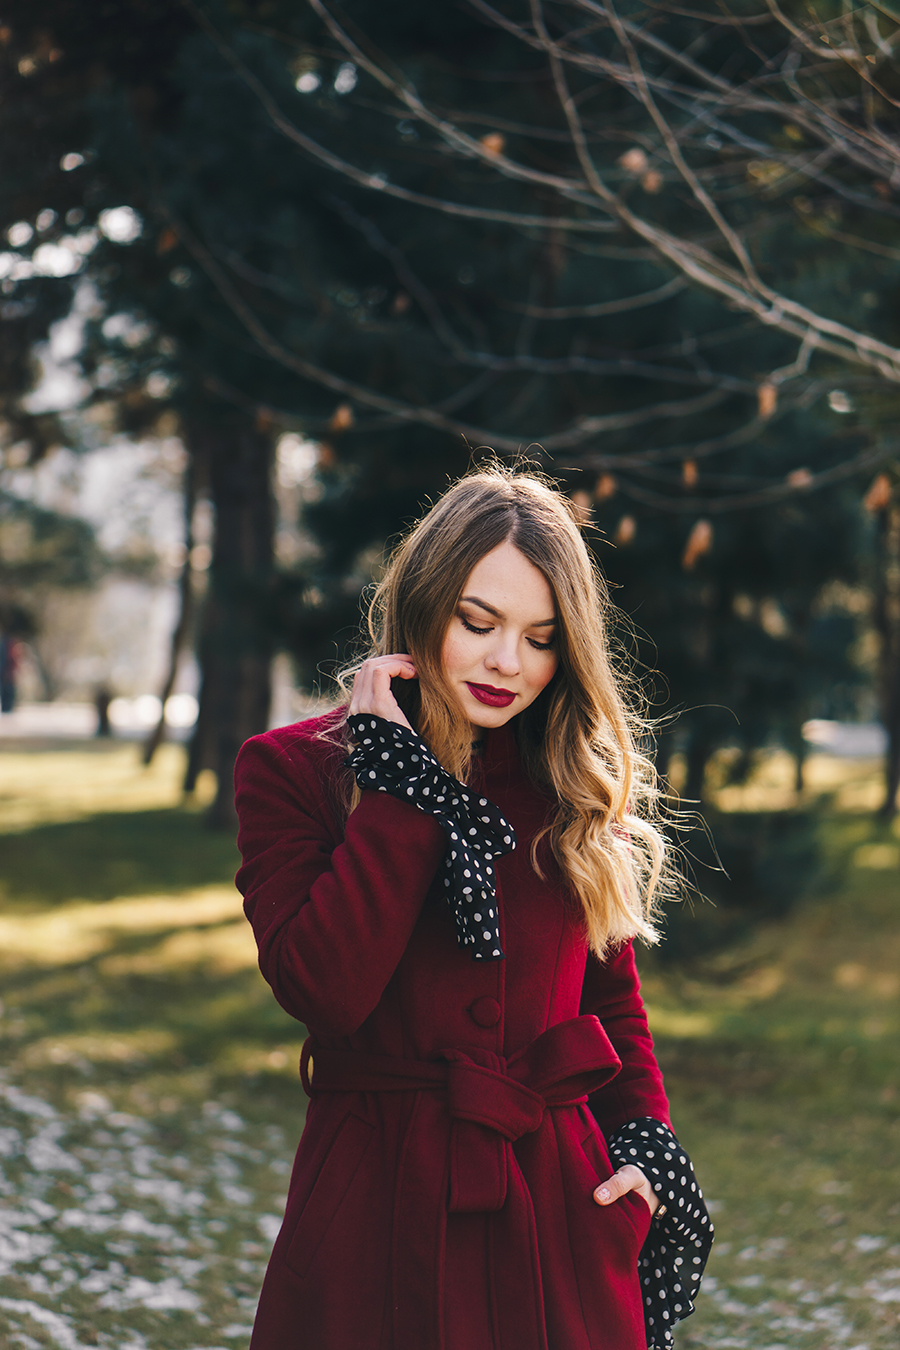 red-wool-coat-polka-dots-bell-sleeves-blouse-winter-outfit-8